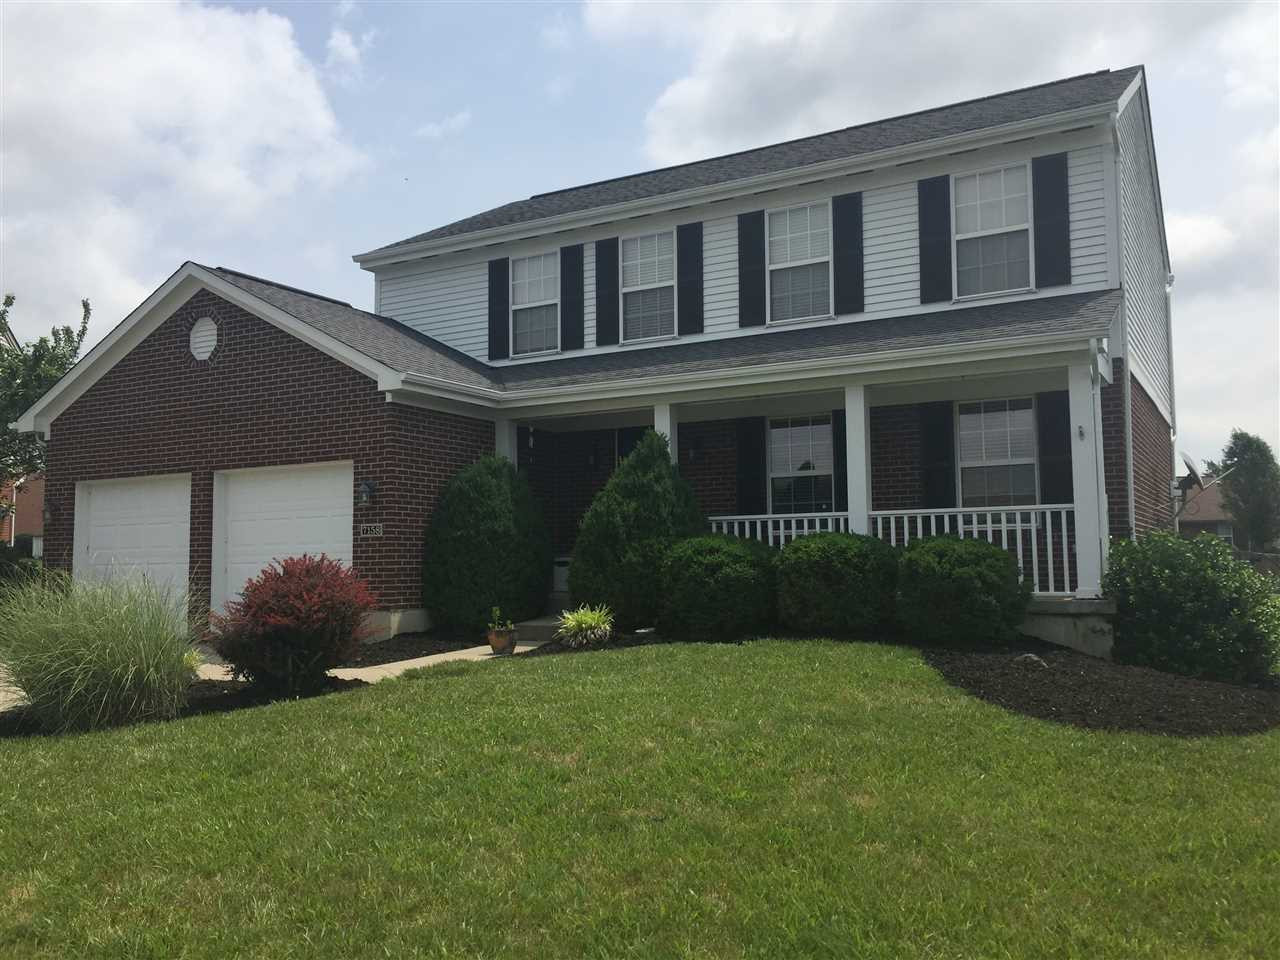 Photo 1 for 7158 Hillstone Ct Florence, KY 41042